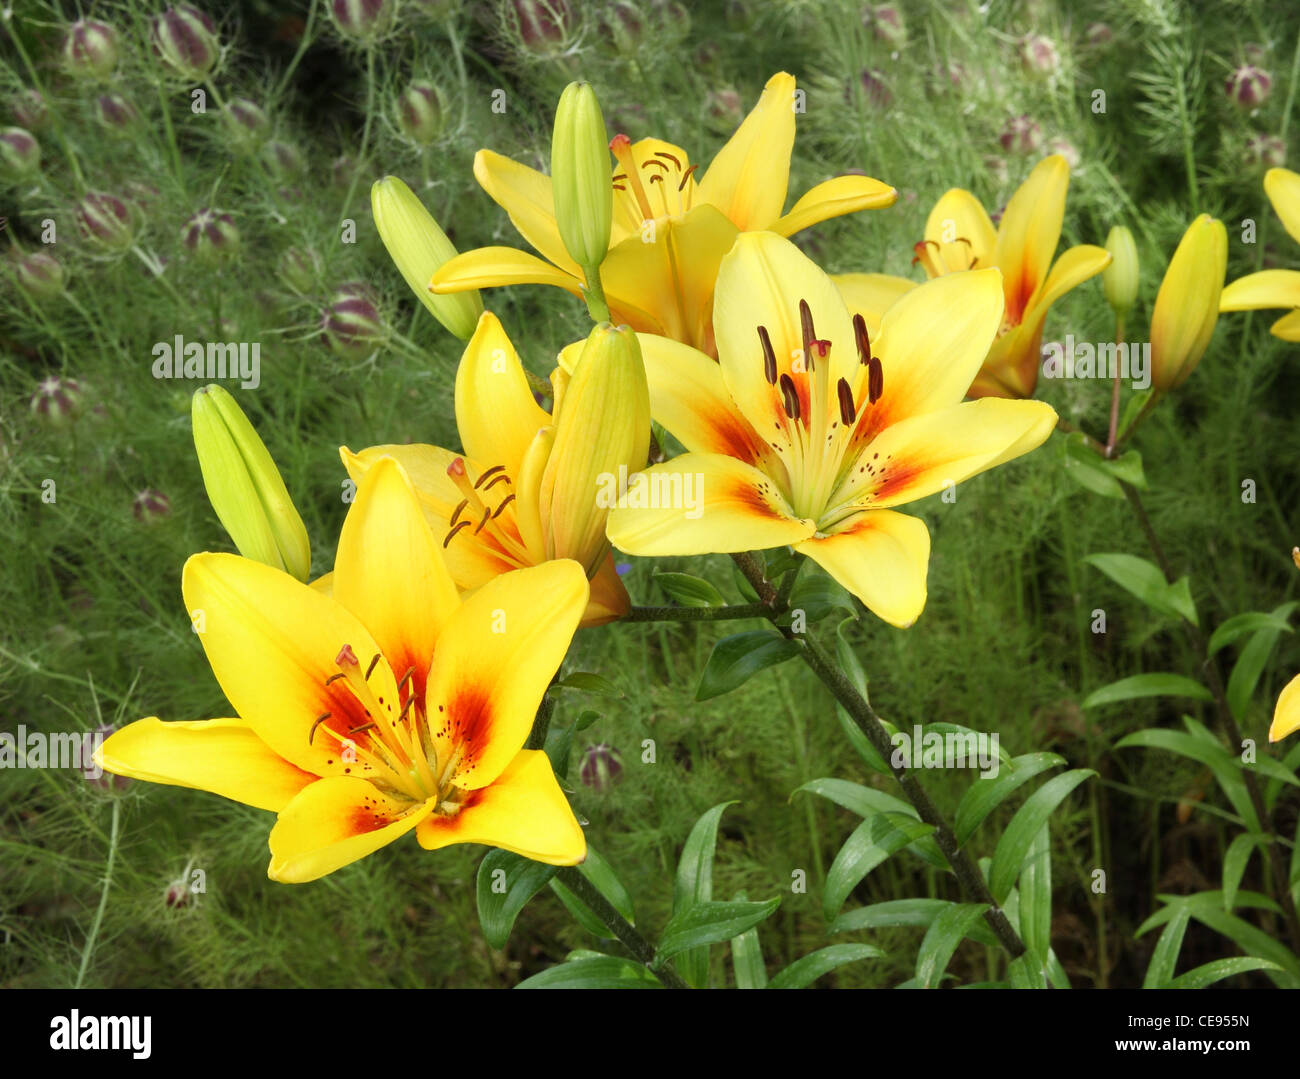 bright yellow asiatic lily flowers - Stock Image